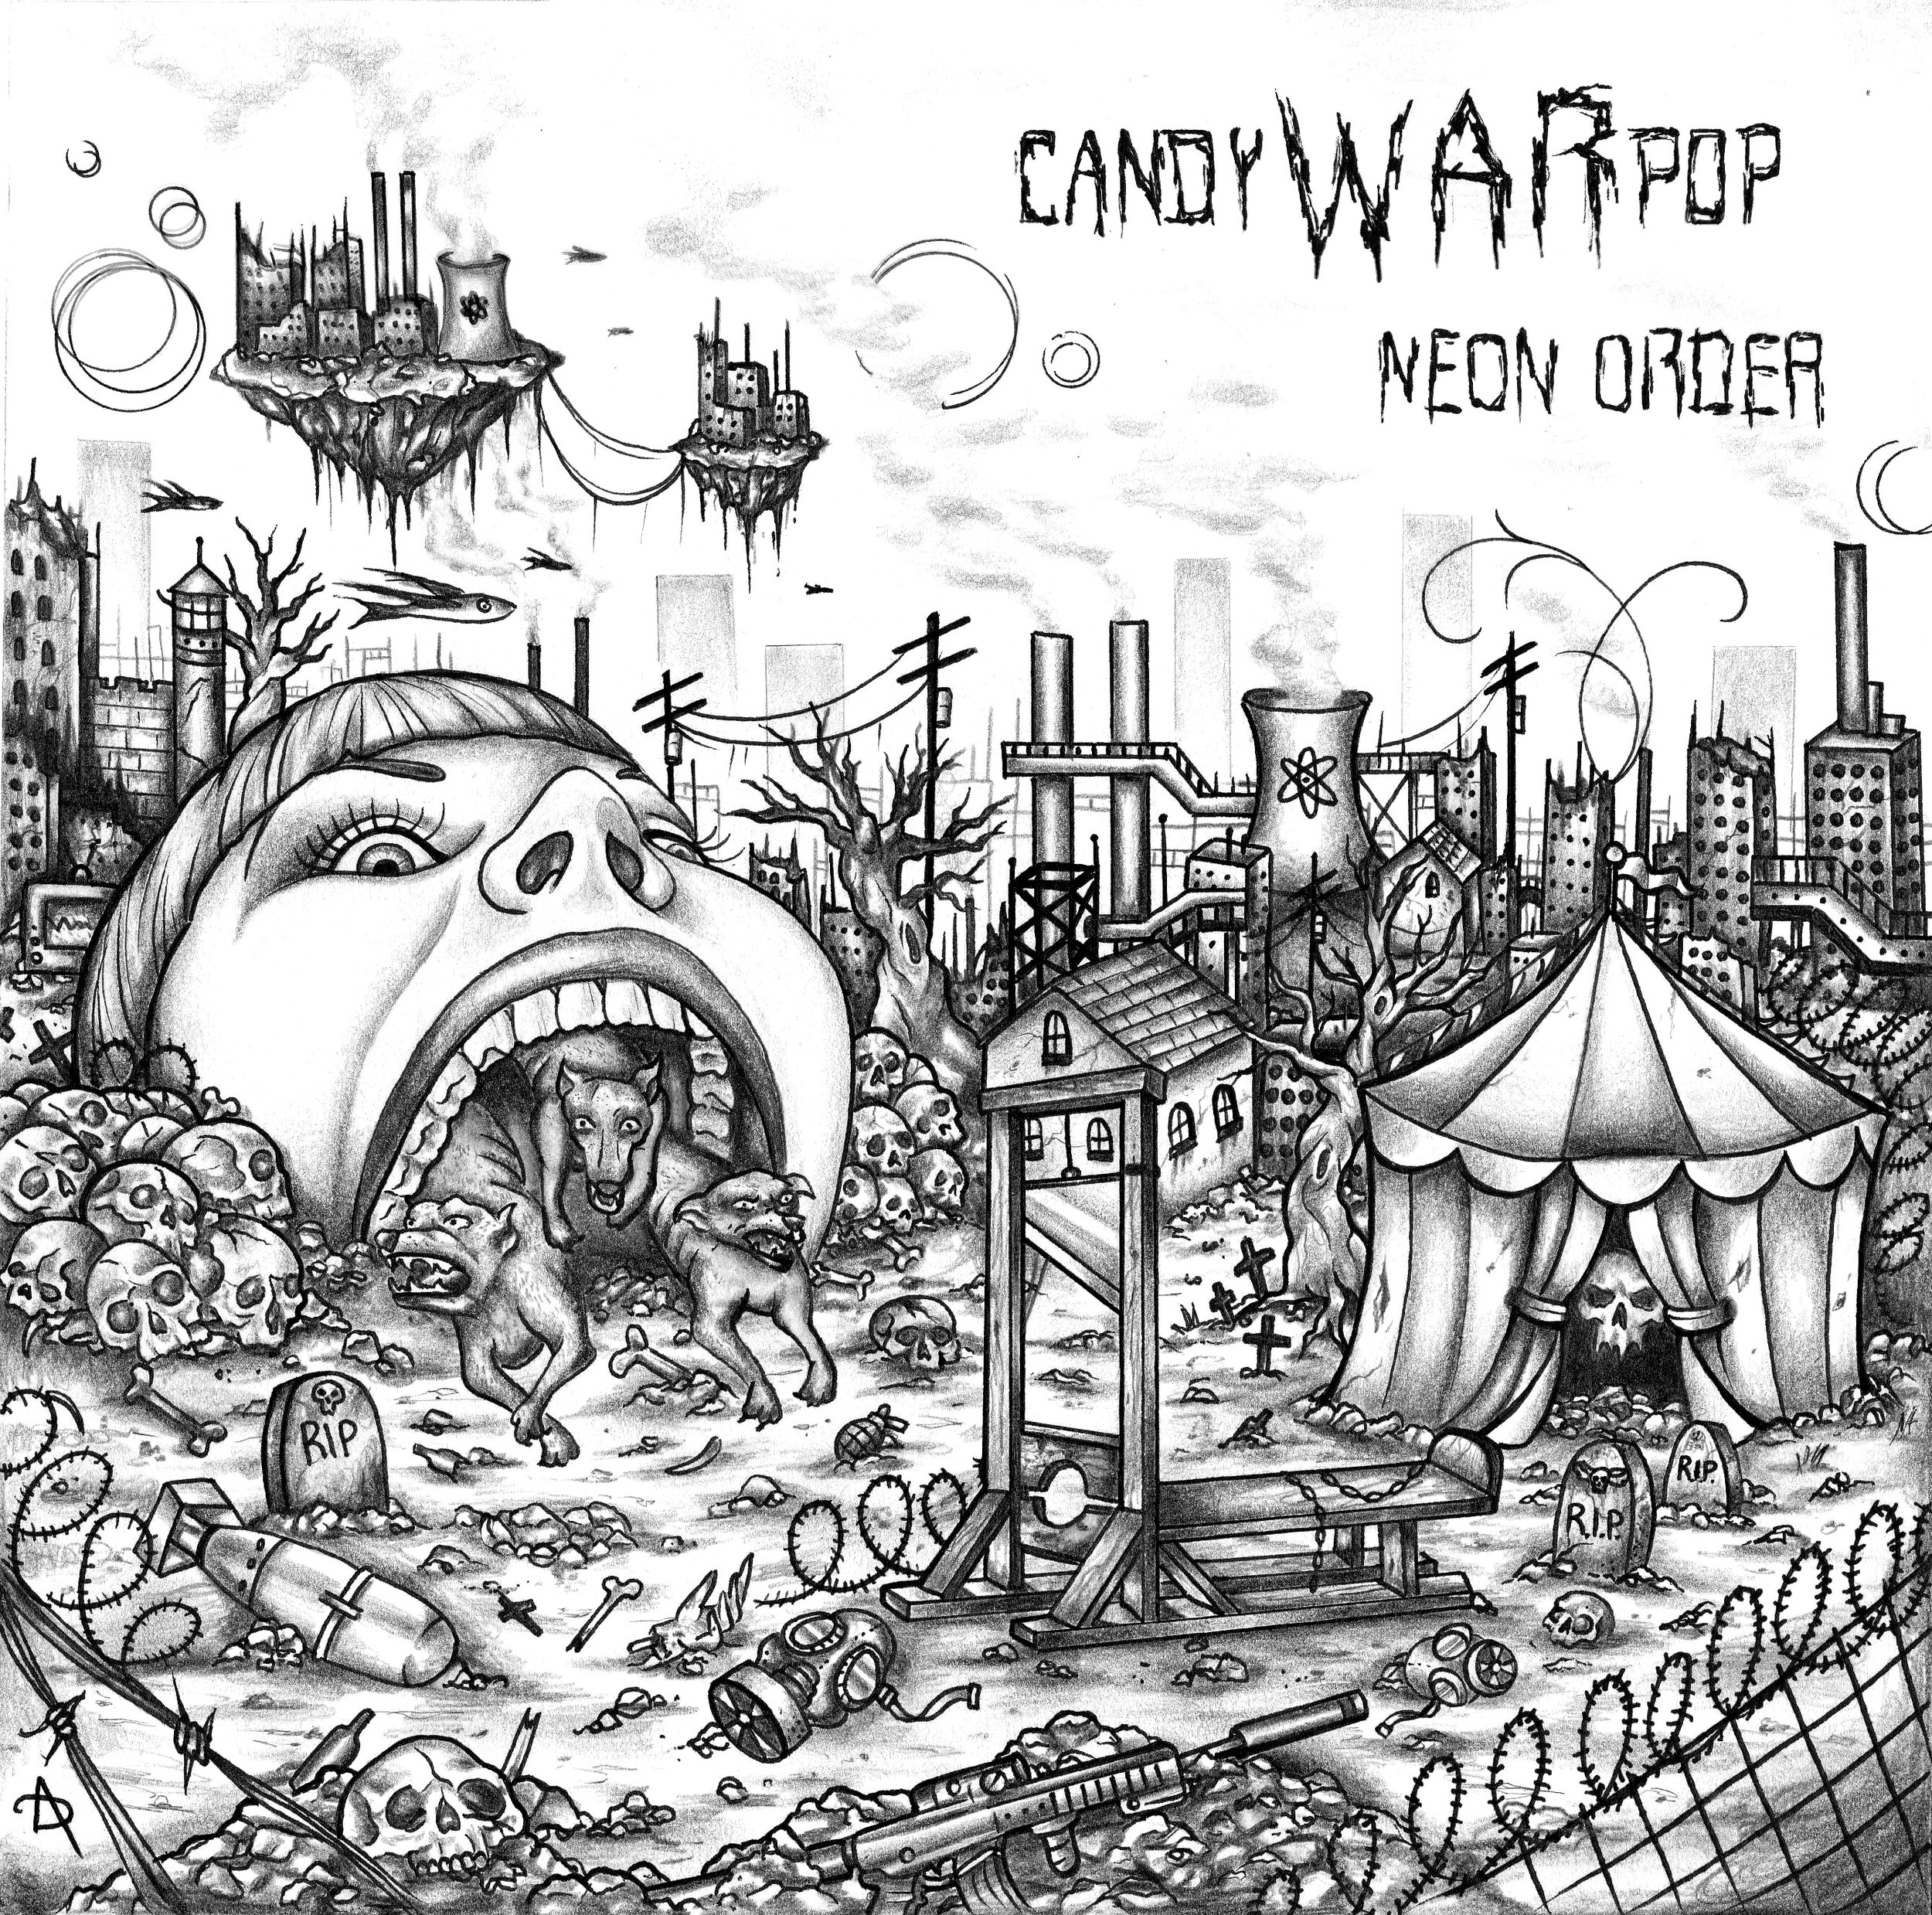 Neon Order, our latest album, is now available. Visit one of the links below to stream and download:  Bandcamp -  https://candywarpop.bandcamp.com/album/neon-order   Spotify -  https://open.spotify.com/album/21D5NNGnbPzWTBaV7ptvbm   iTunes -  http://itunes.apple.com/album/id1315013579?ls=1&app=itunes   Apple Music -  http://itunes.apple.com/album/id/1315013579   🖤YouTube -  https://www.youtube.com/watch?v=WzzOxjQAowg&list=PLf1TACd47oNMhl5C0CpESUG2Z91O9ckZ b  🖤Google Play -  https://play.google.com/store/music/album/Candy_Warpop_Neon_Order?id=Bje7azrobl6vbqkj5qecntxflg e  🖤Amazon -  https://www.amazon.com/Neon-Order-Candy-Warpop/dp/B077K6SXN3/ref=sr_1_1?ie=UTF8&qid=1511461047&sr=8-1&keywords=candy+warpop+neon+order